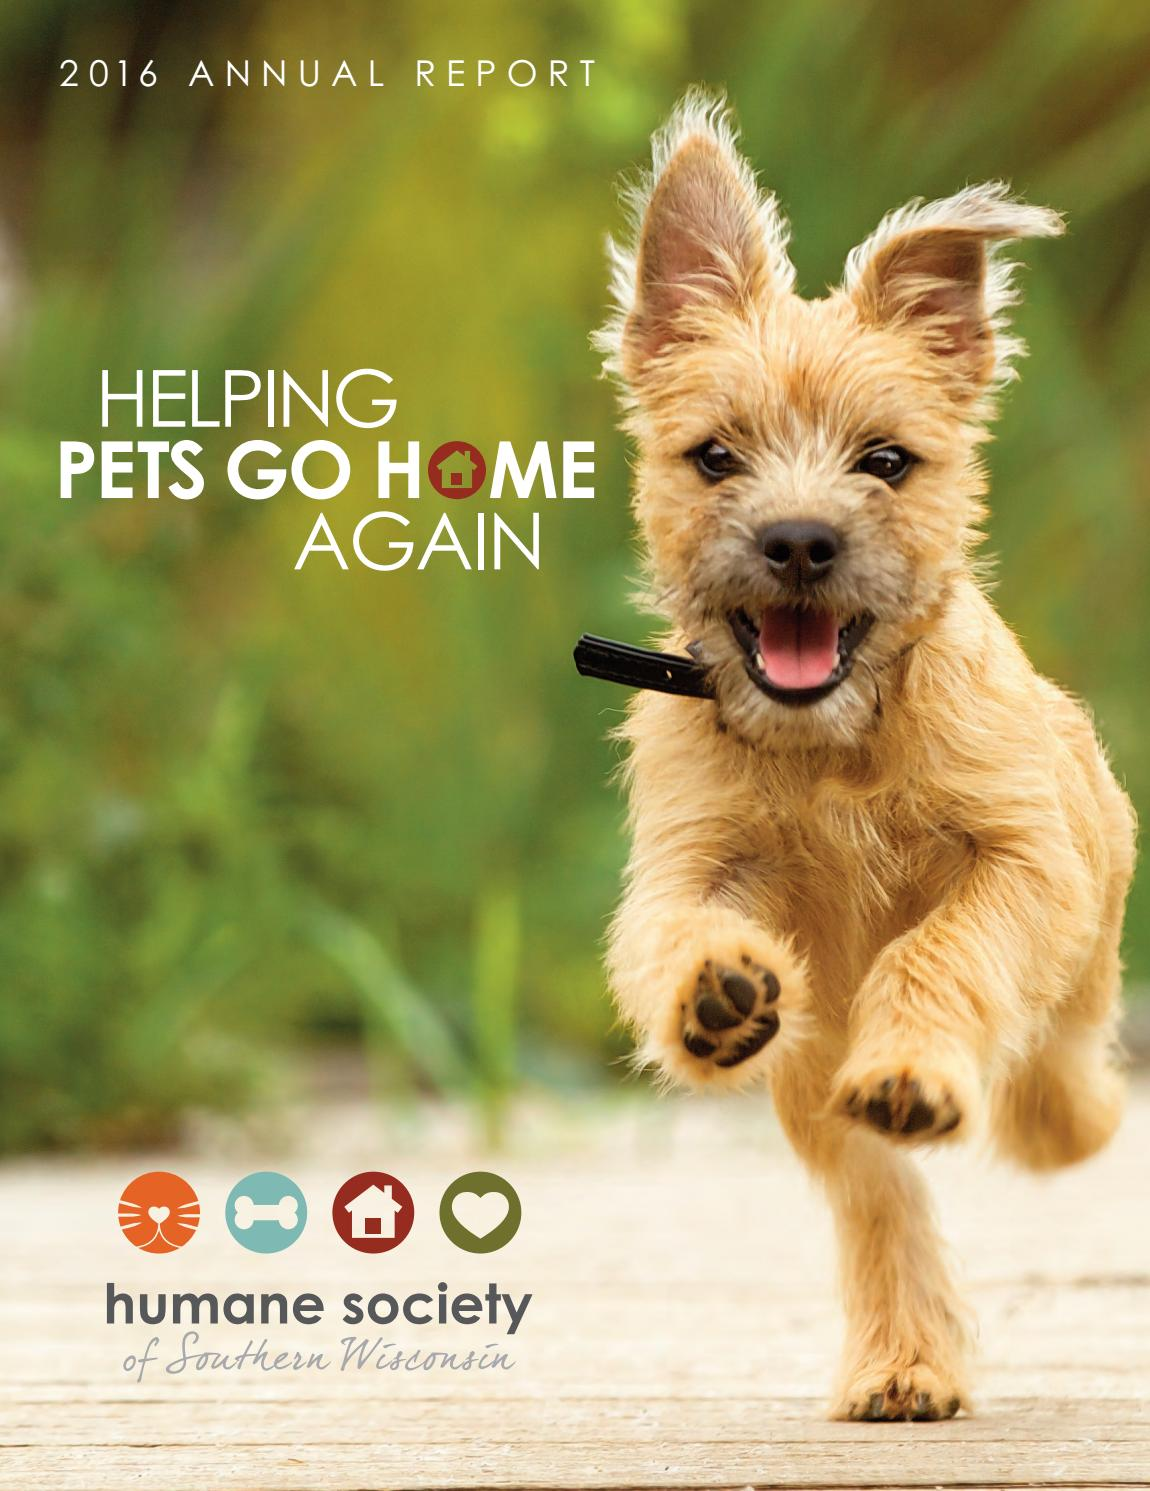 Humane Society Of Southern Wisconsin 2016 Annual Report By Humane Society Of Southern Wisconsin Issuu